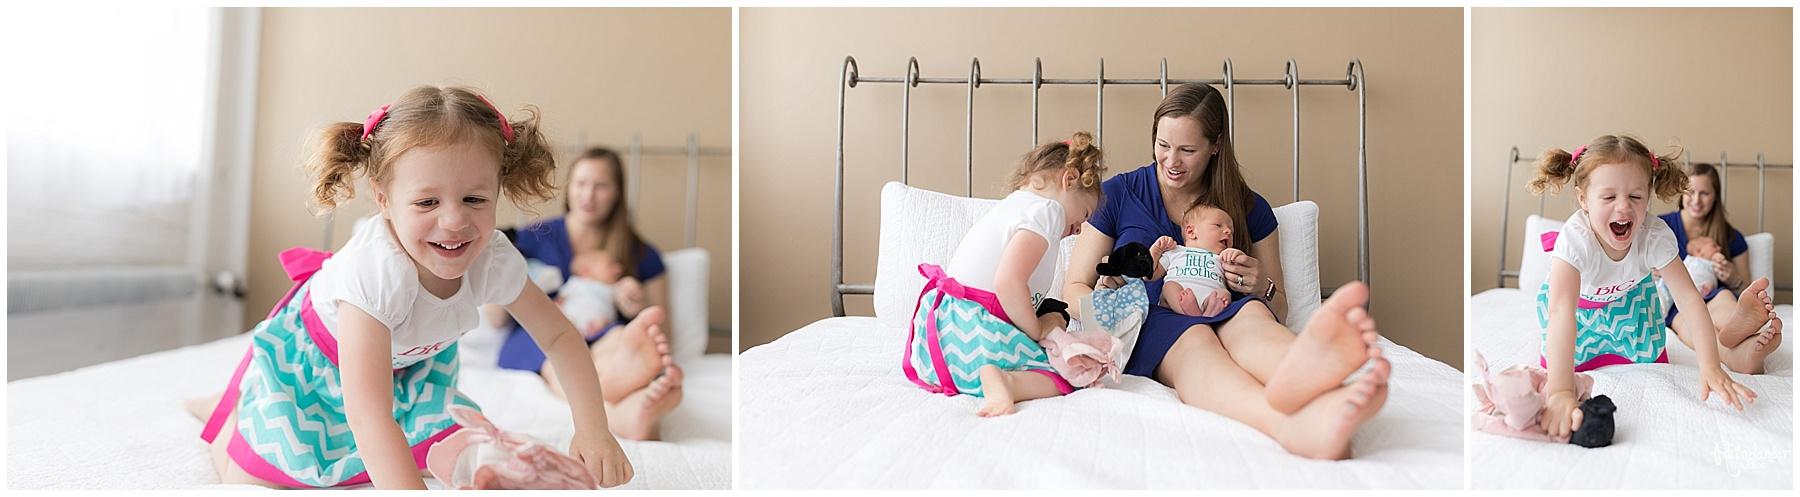 Mother playing with daughter and newborn baby boy on bed by Raindancer Studios Indianapolis Newborn Photographer Jill Howell